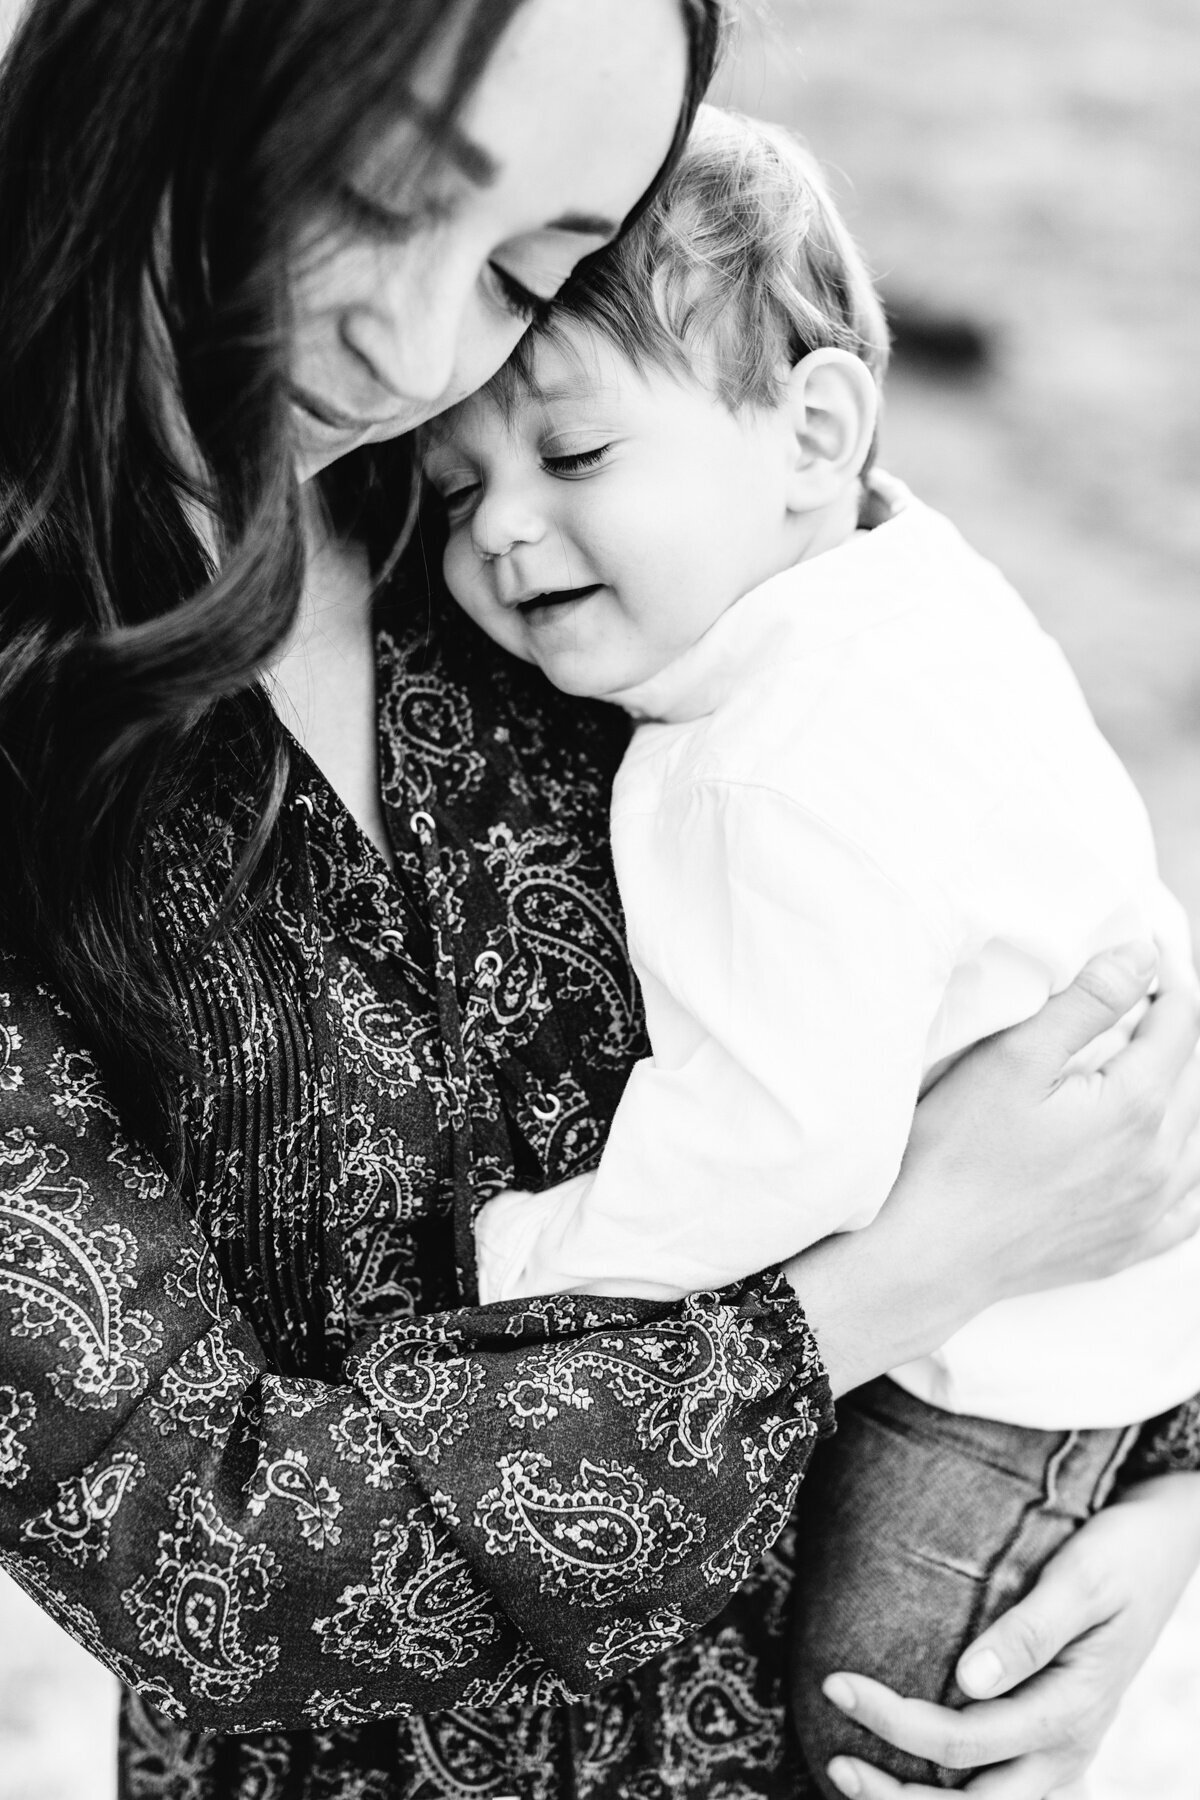 California Family Photography-Texas Family Photographer-Family Photos-Jodee Debes Photography-84